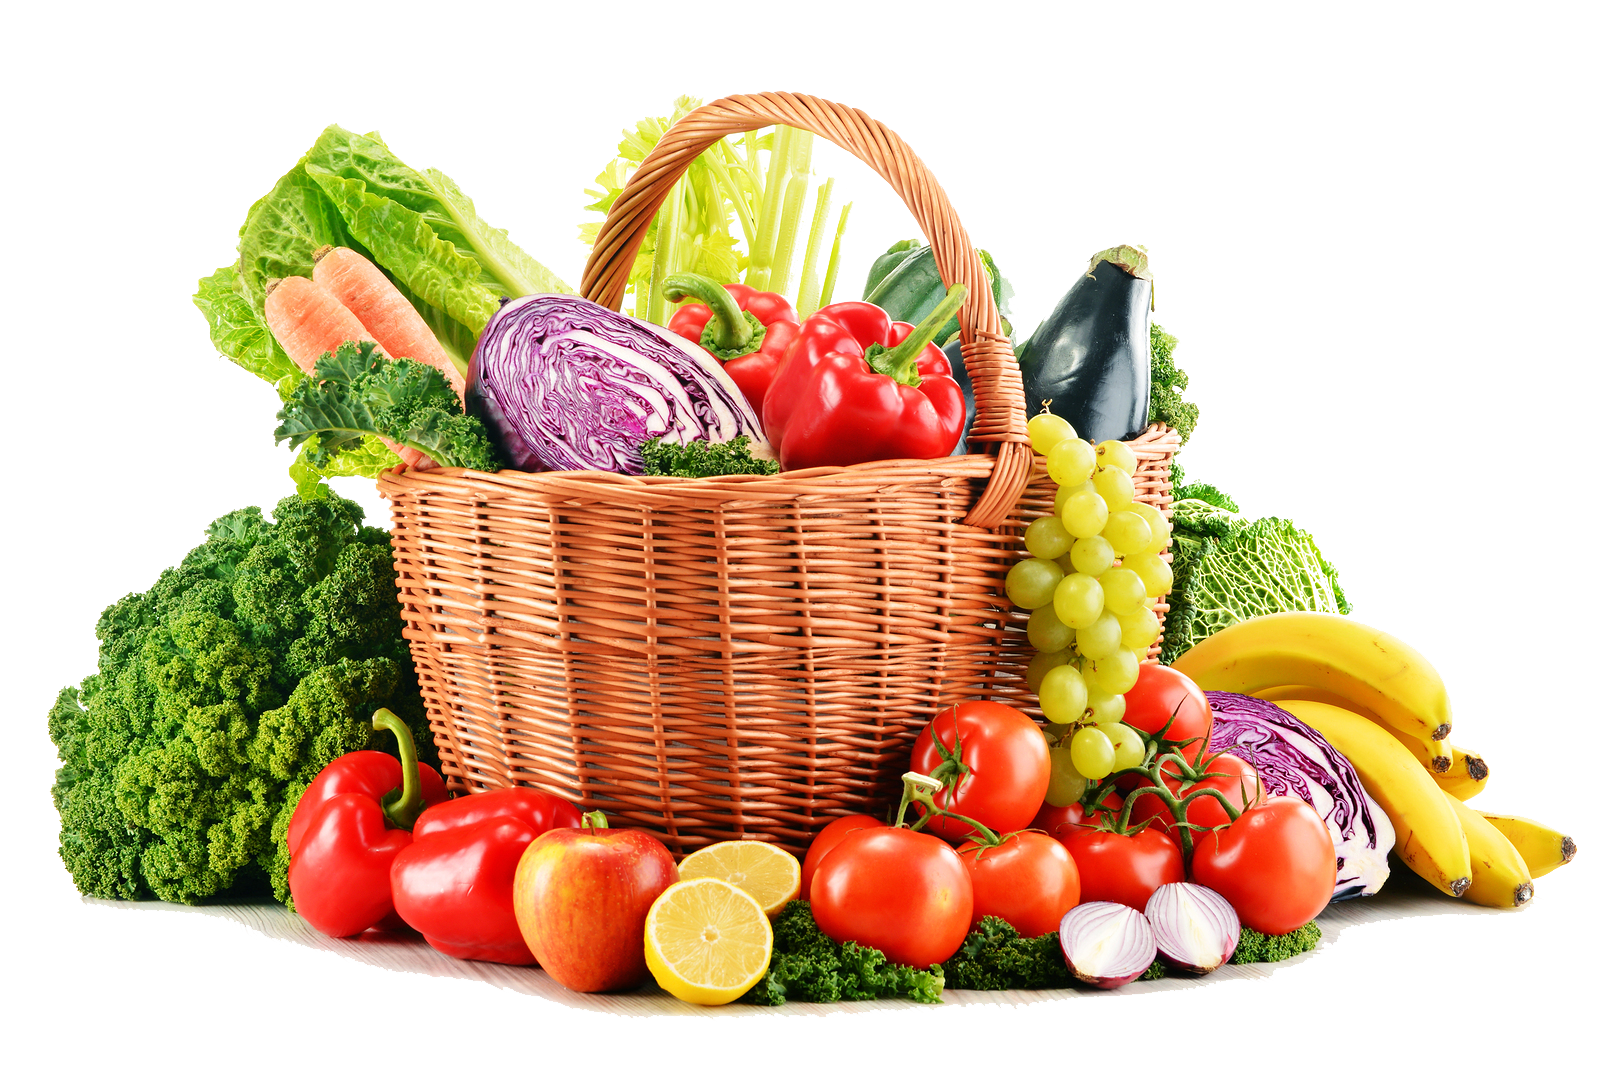 Vegetable PNG Photos - Vegetable PNG